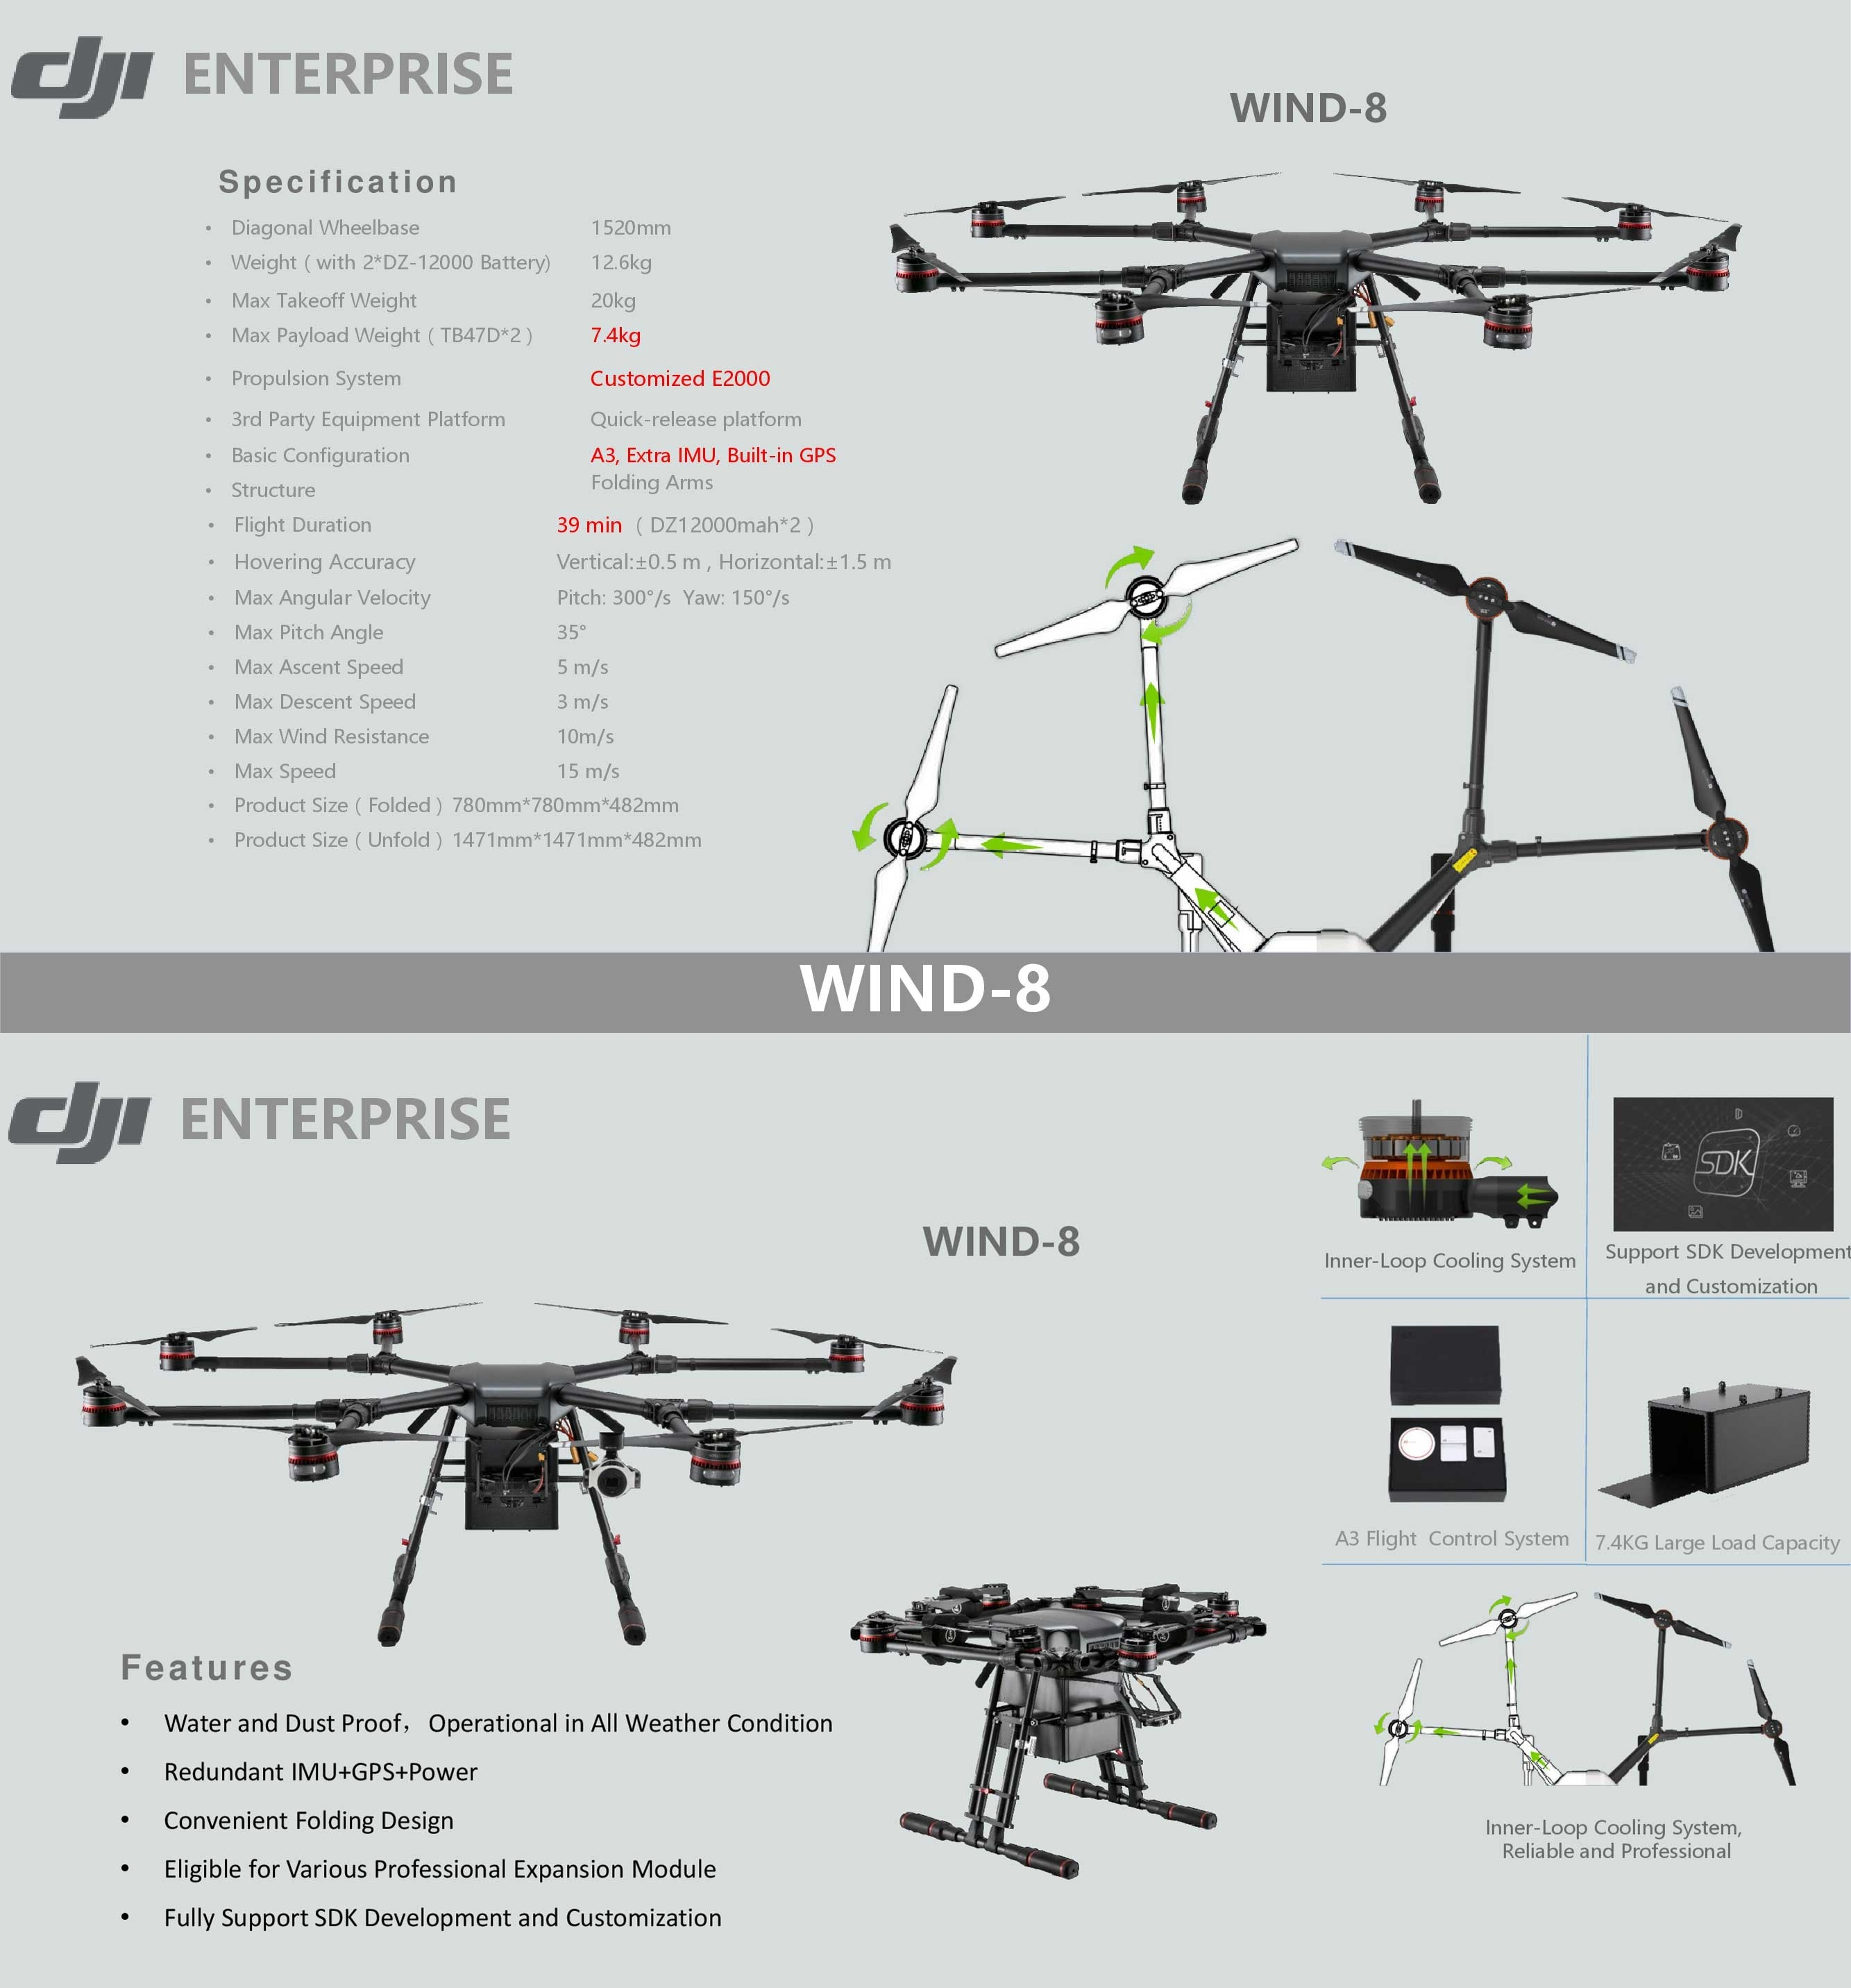 Buy Dji Wind 8 Industrial Octocopter Drone Ip56 Rain And Dust Resistance 10kg Payload Today At